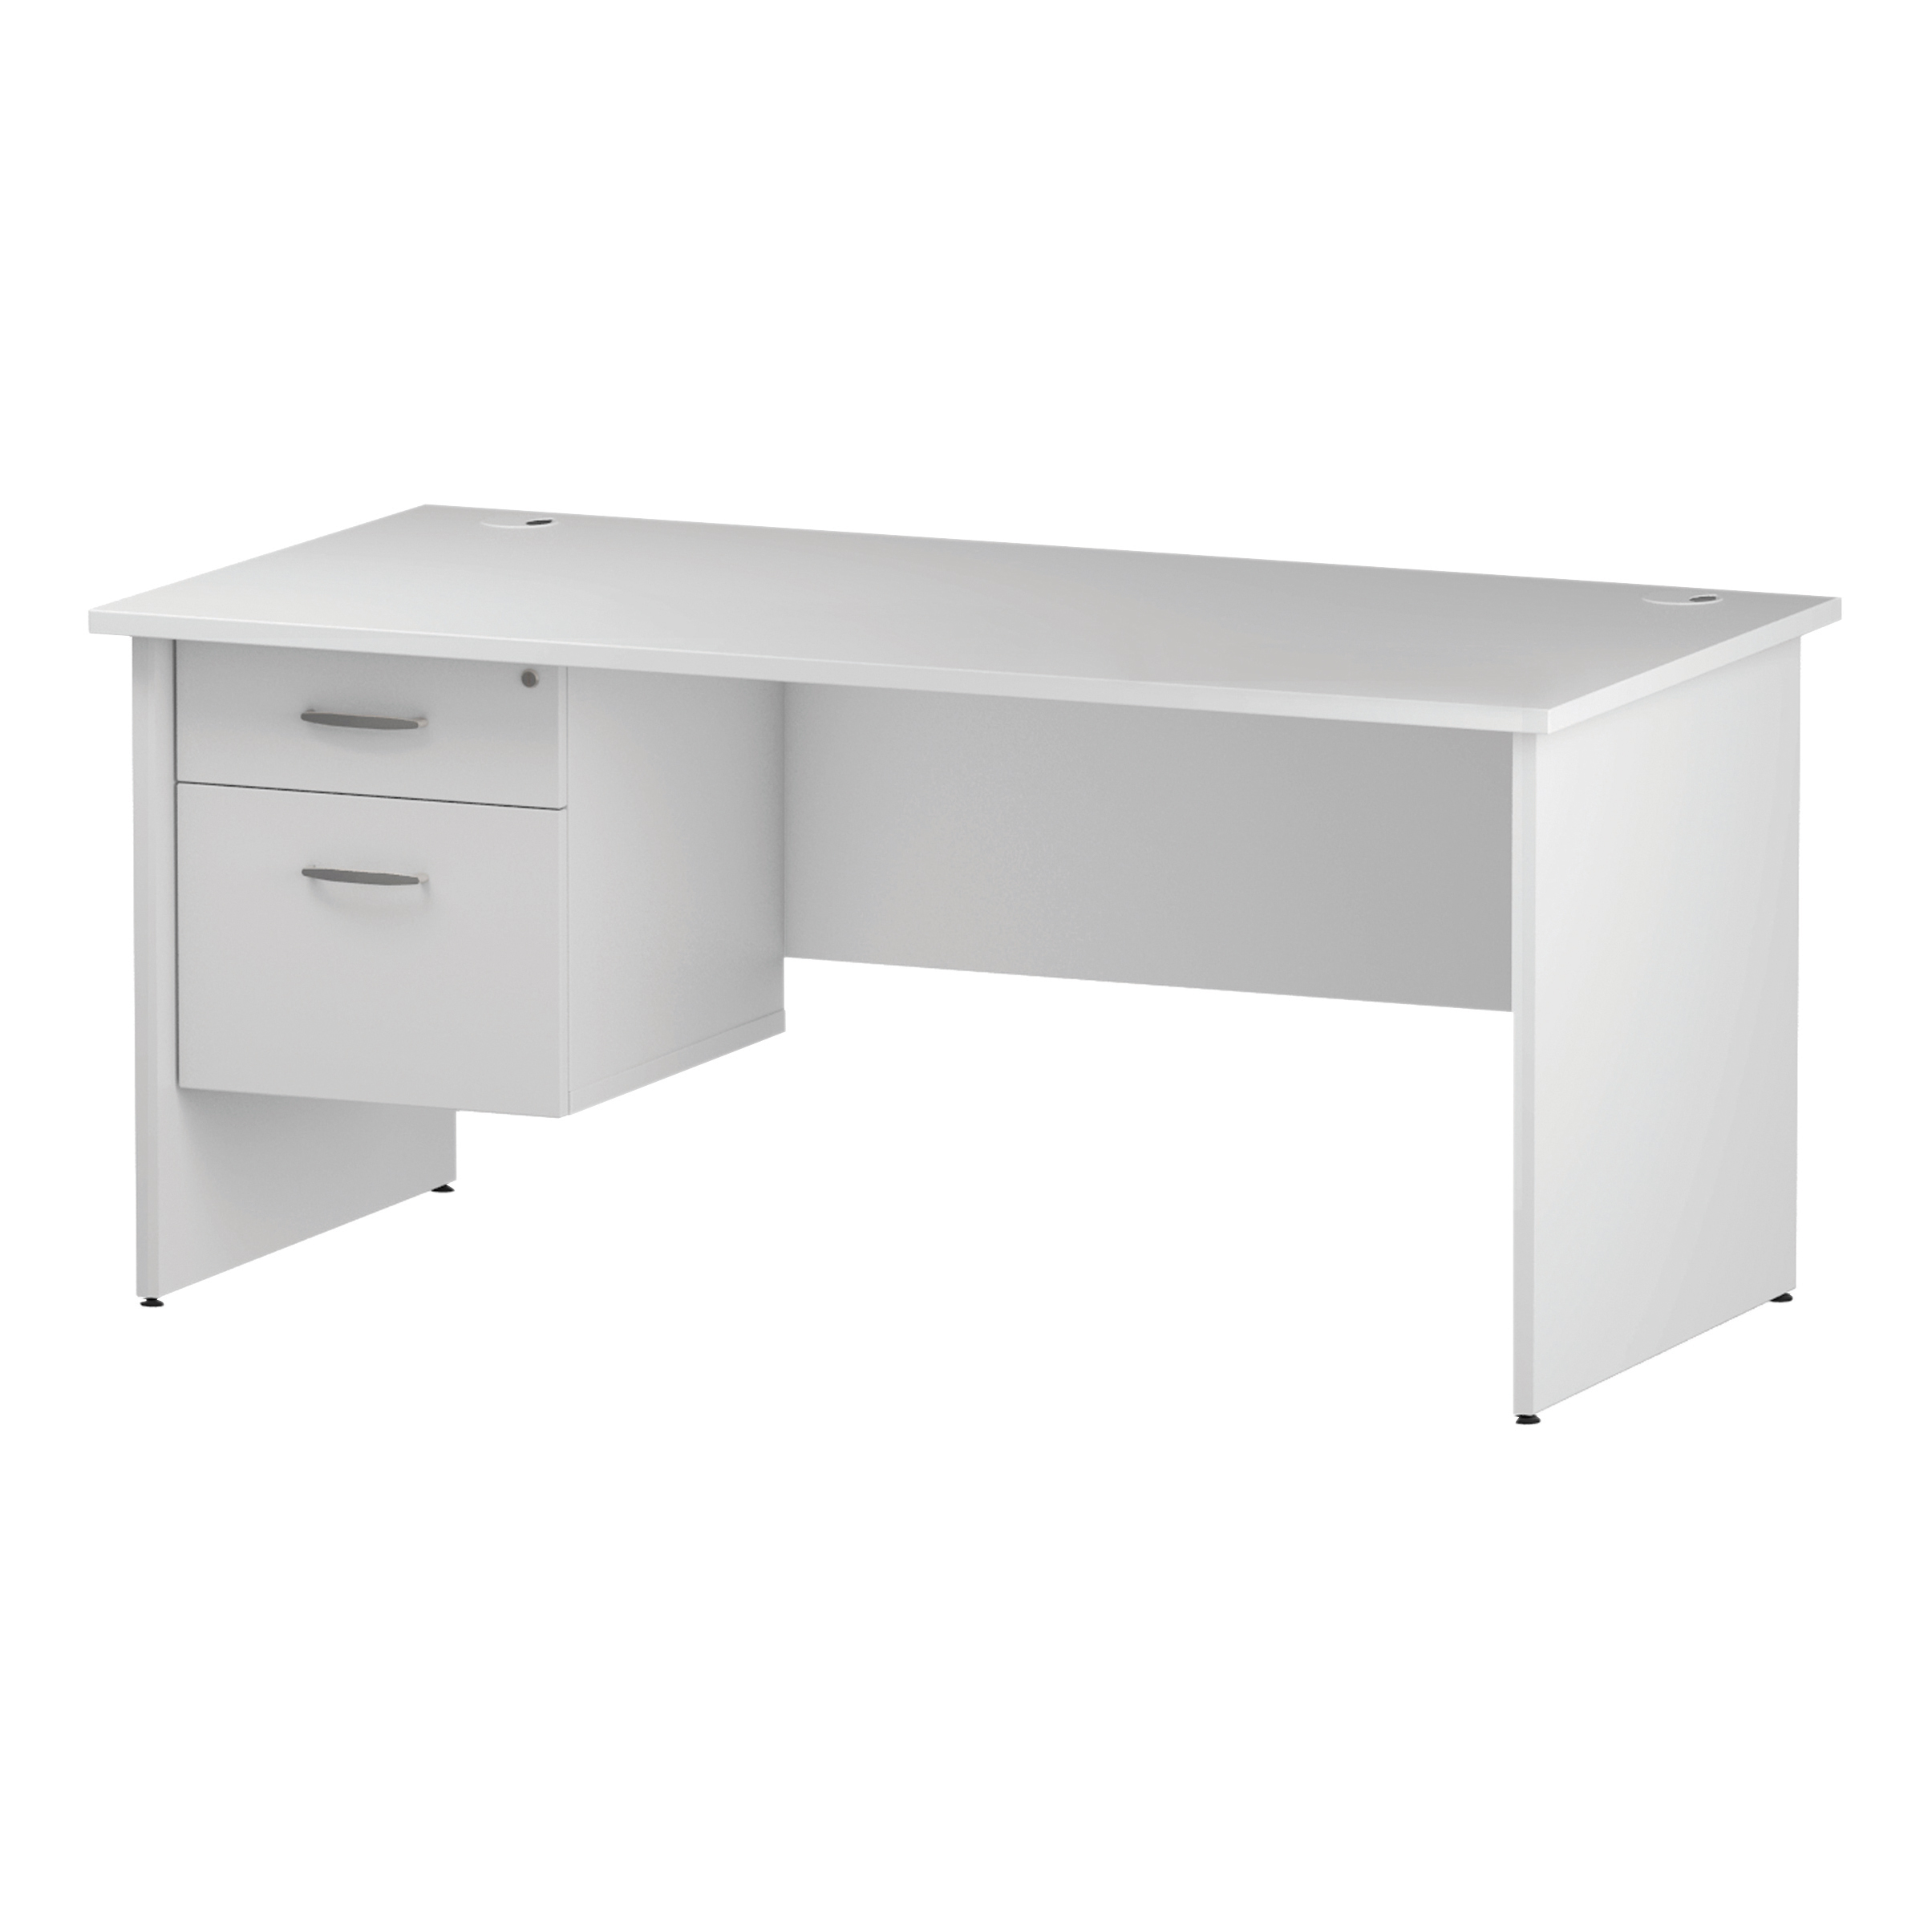 Trexus Rectangular Desk Panel End Leg 1600x800mm Fixed Pedestal 2 Drawers White Ref I002252